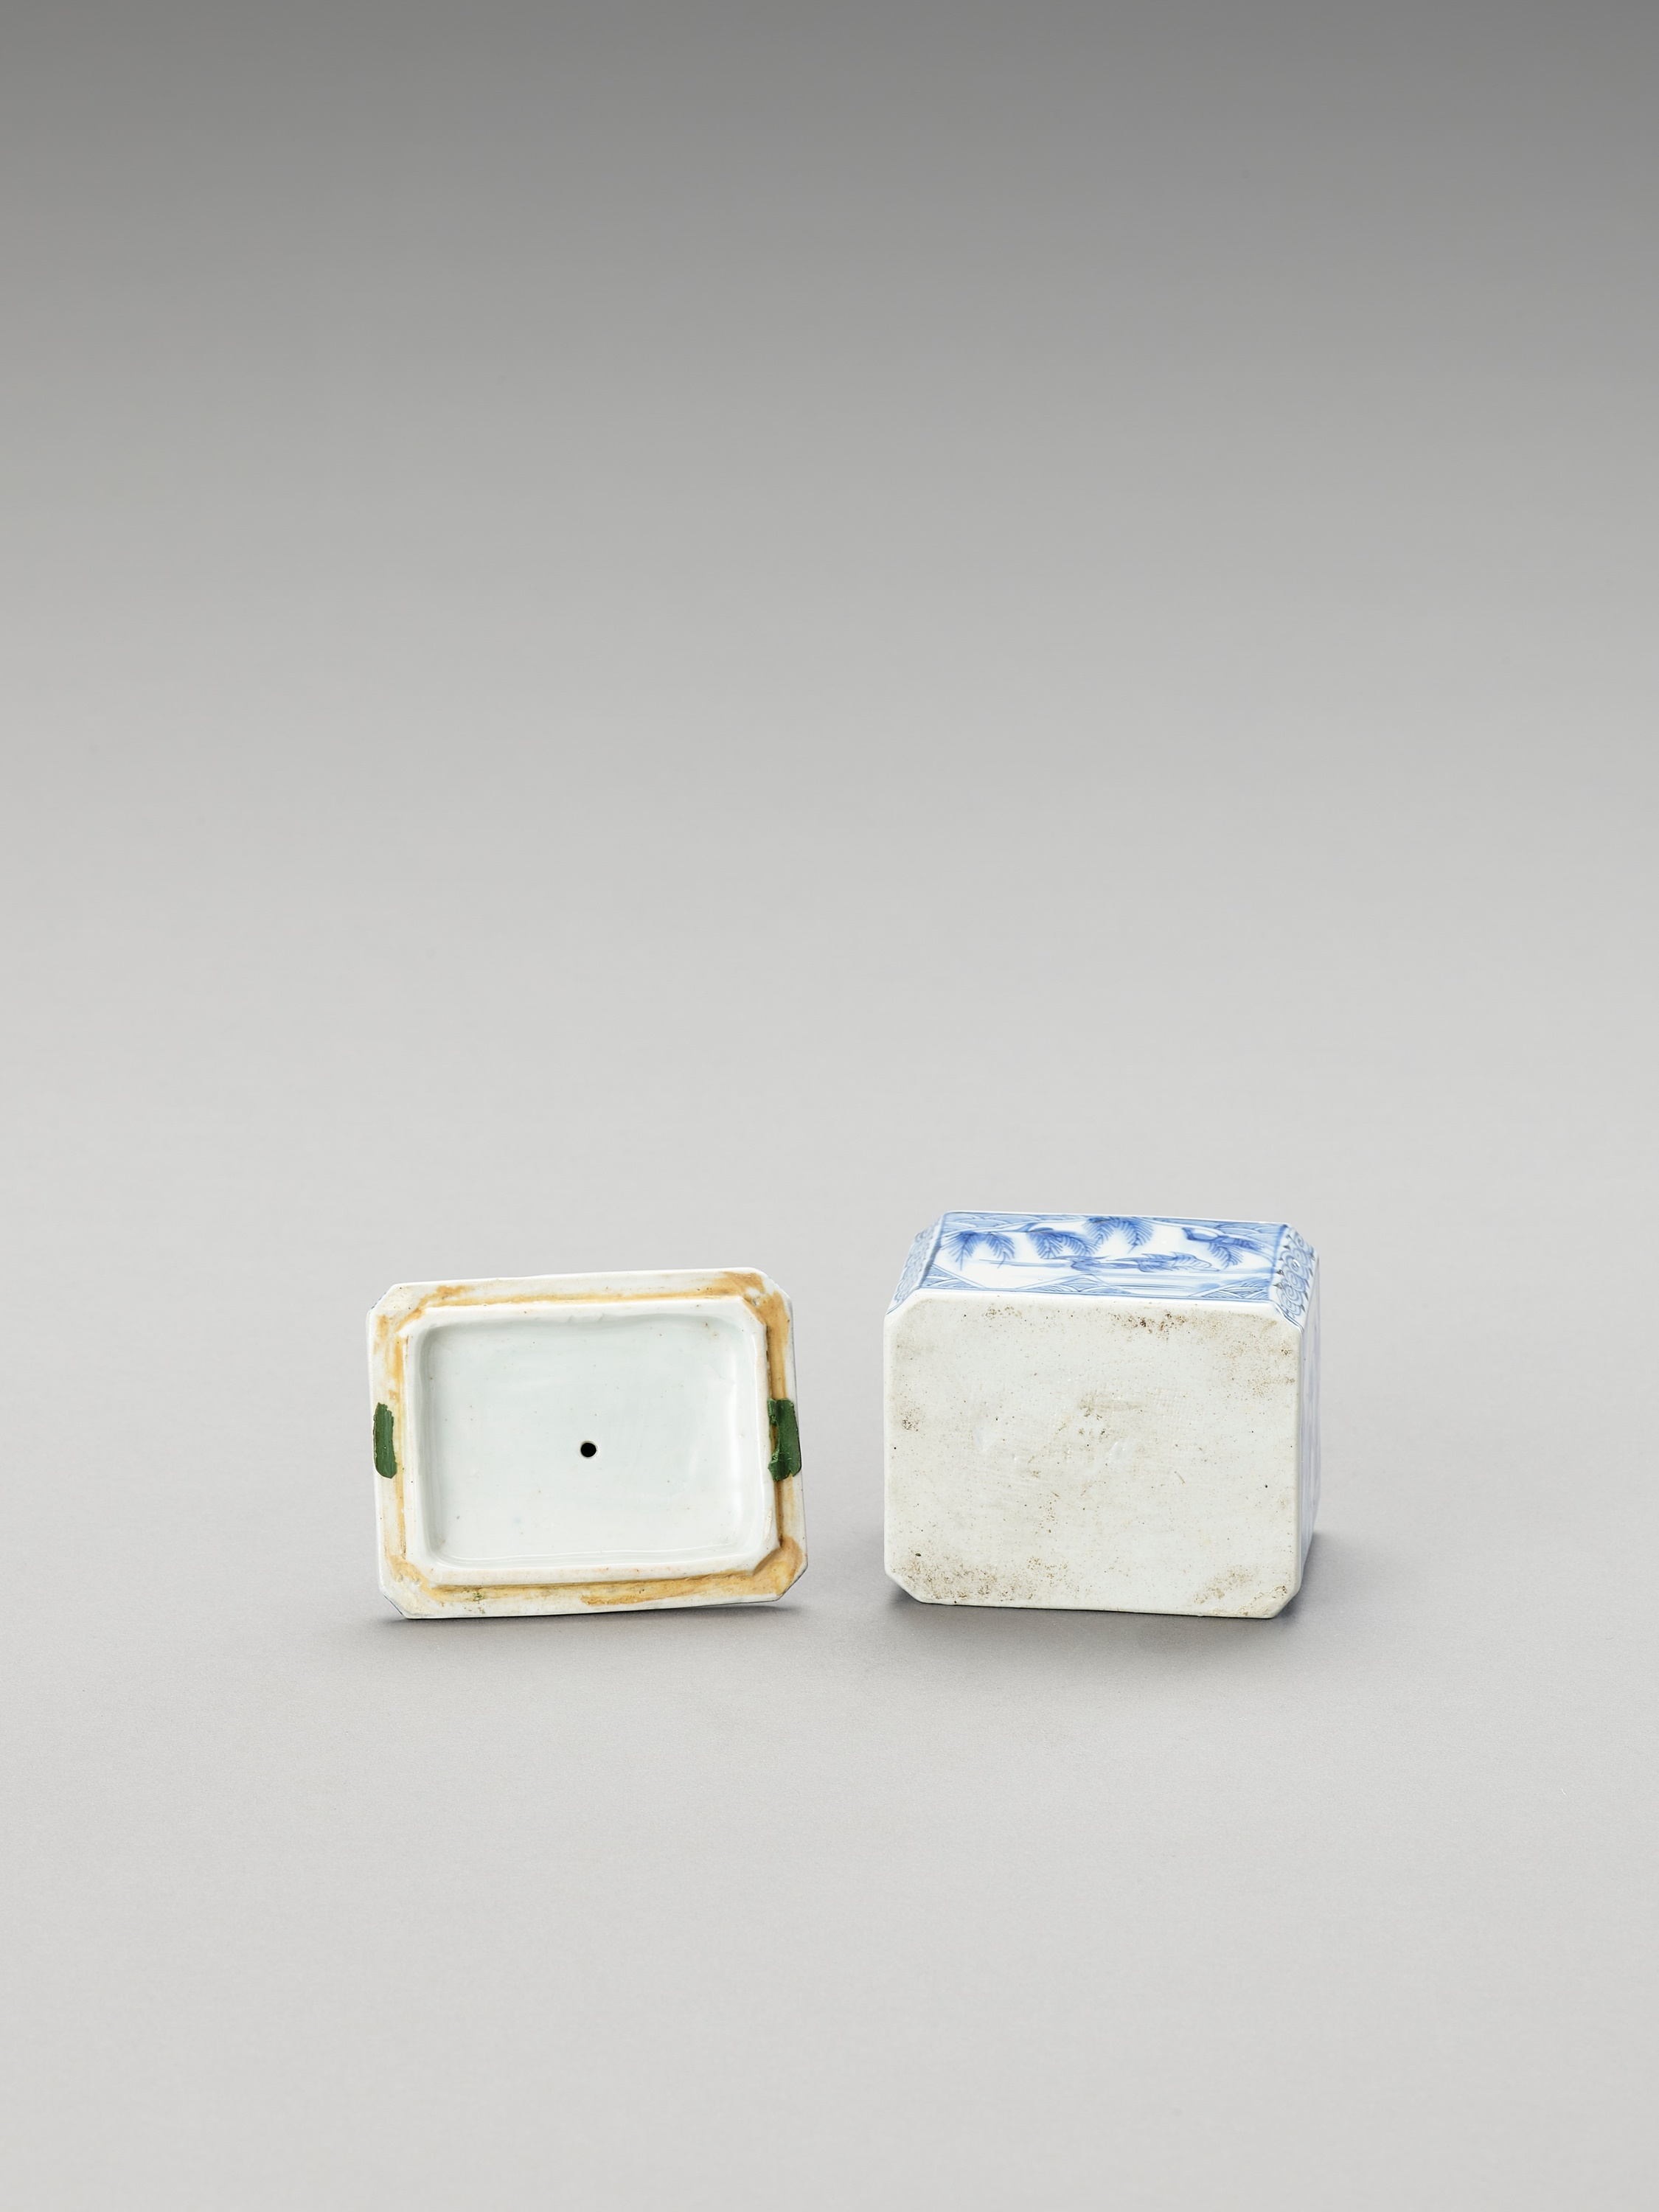 A BLUE AND WHITE FUKAGAWA PORCELAIN TEA CADDY AND COVER - Image 6 of 7